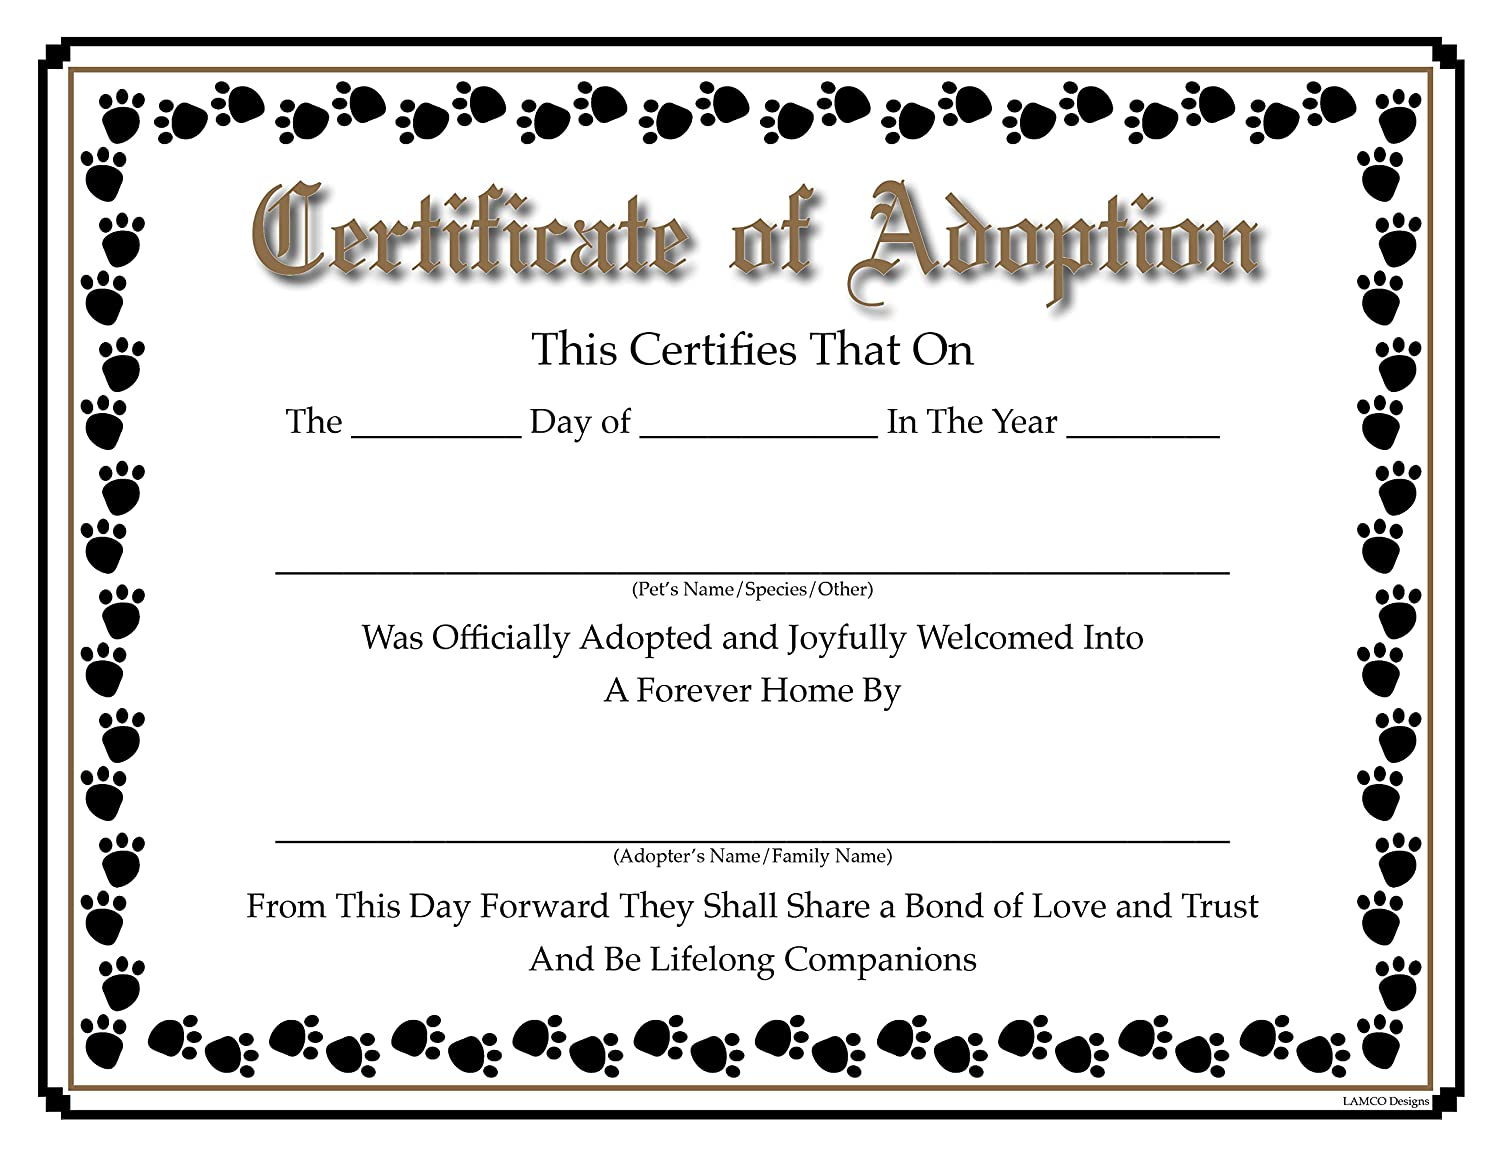 Amazon pet certificate of adoption and rescue with amazon pet certificate of adoption and rescue with personalized information and heartwarming sentiment office products xflitez Gallery